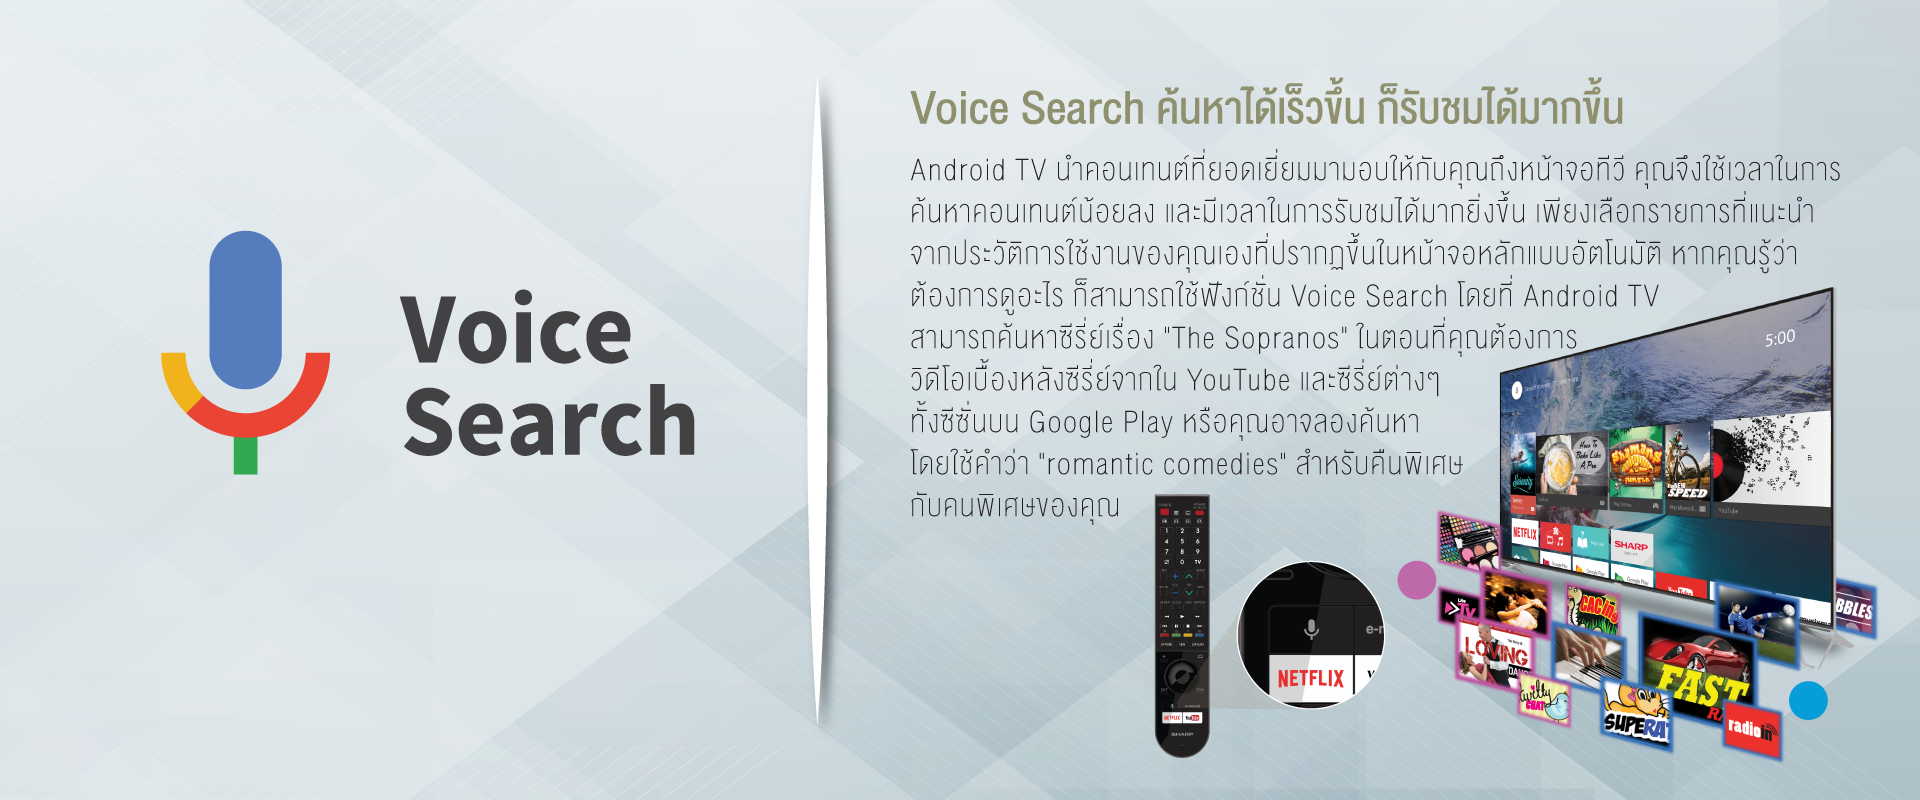 LCD---website-spec-patern---1920x800-Voice-Search.png